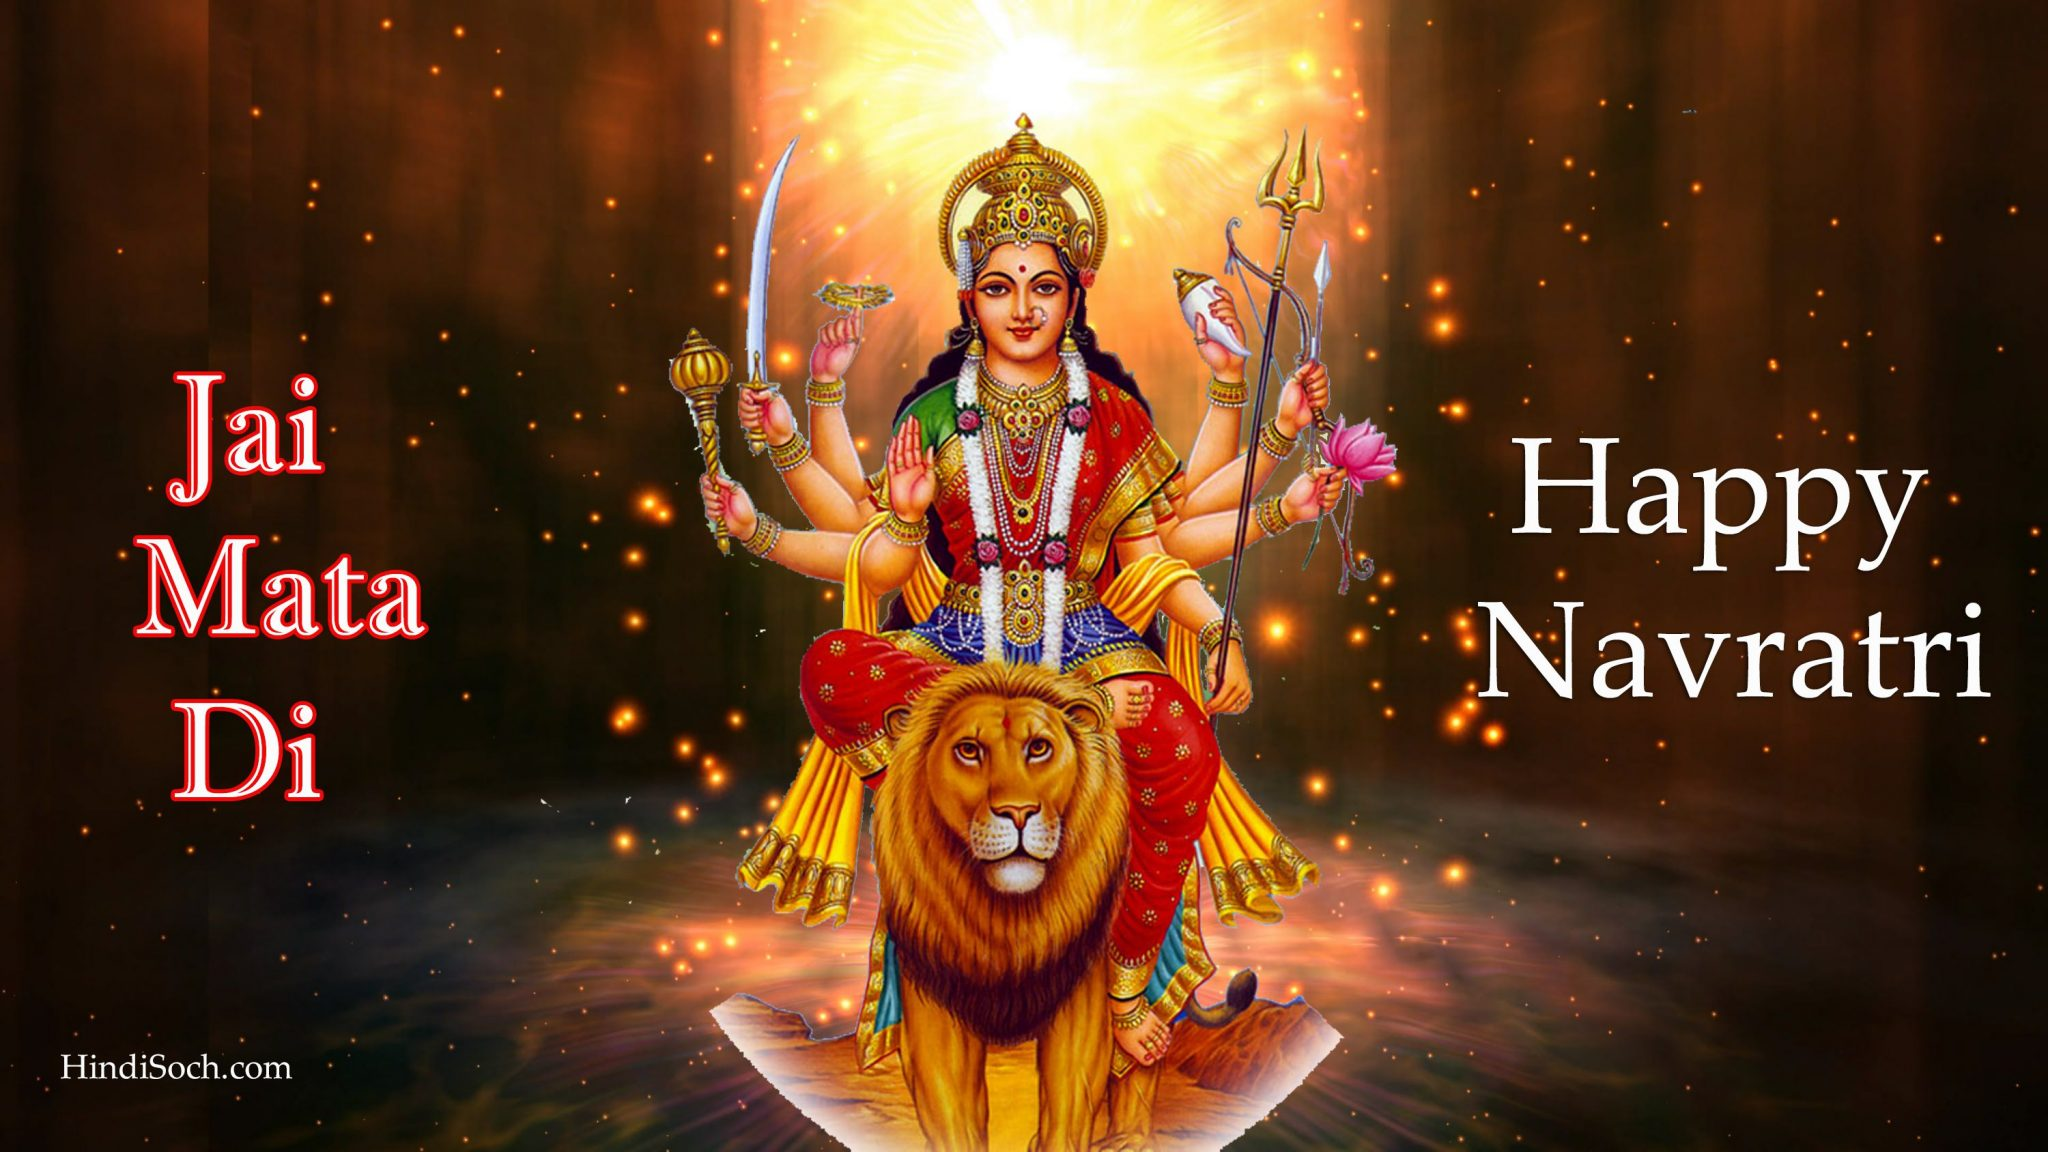 Happy Navratri Images Hd Navratri Wallpaper With Quotes Wishes